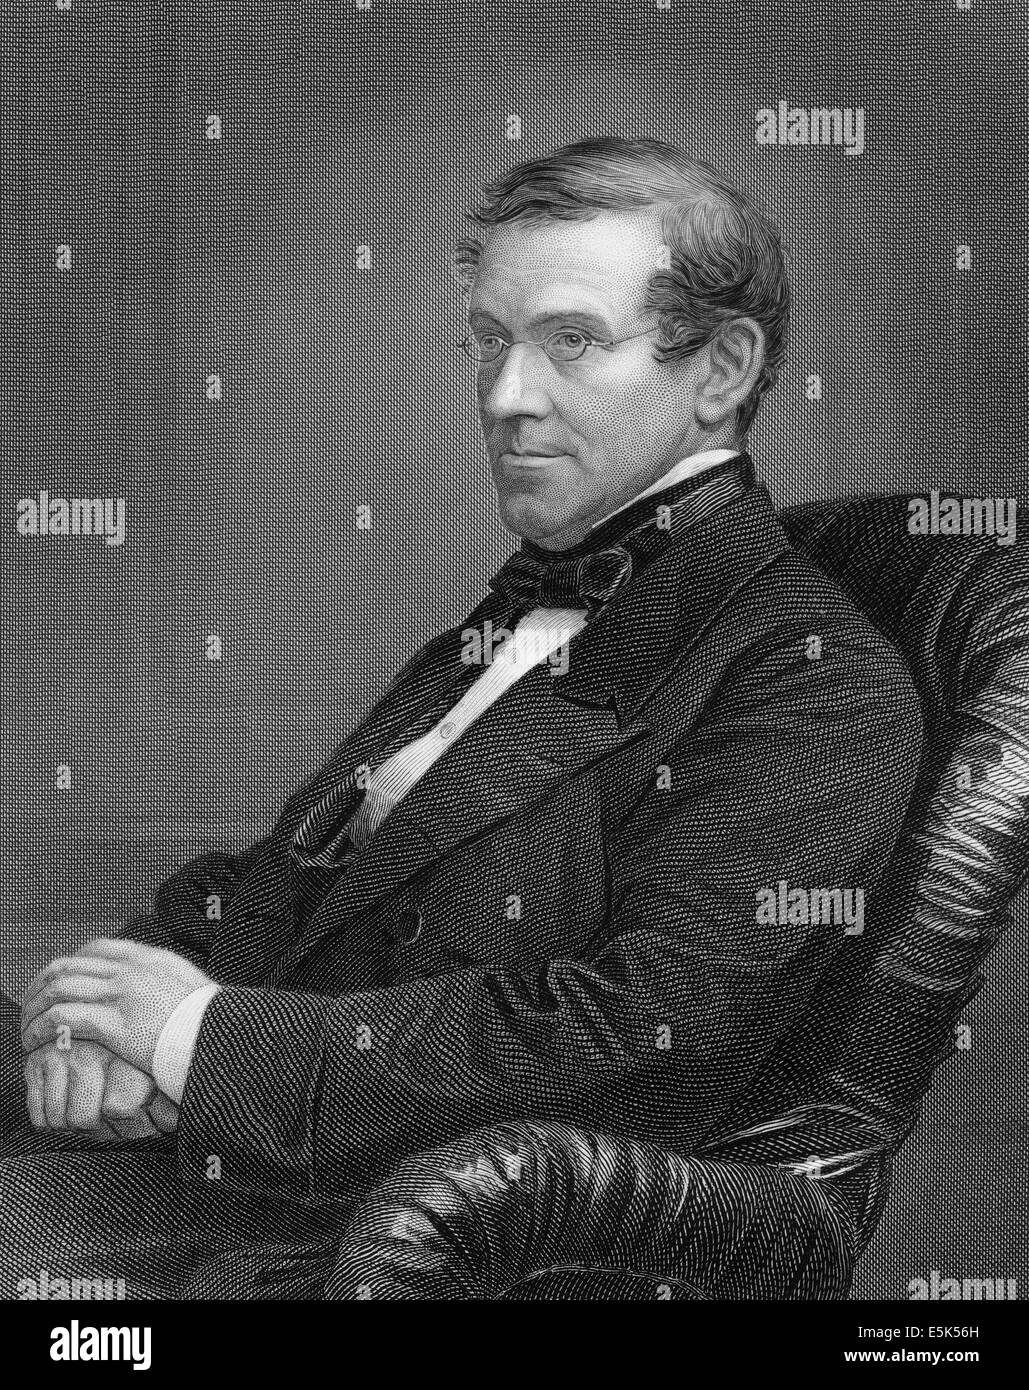 Sir Charles Wheatstone, 1802-1875, an English scientist and inventor, Stock Photo